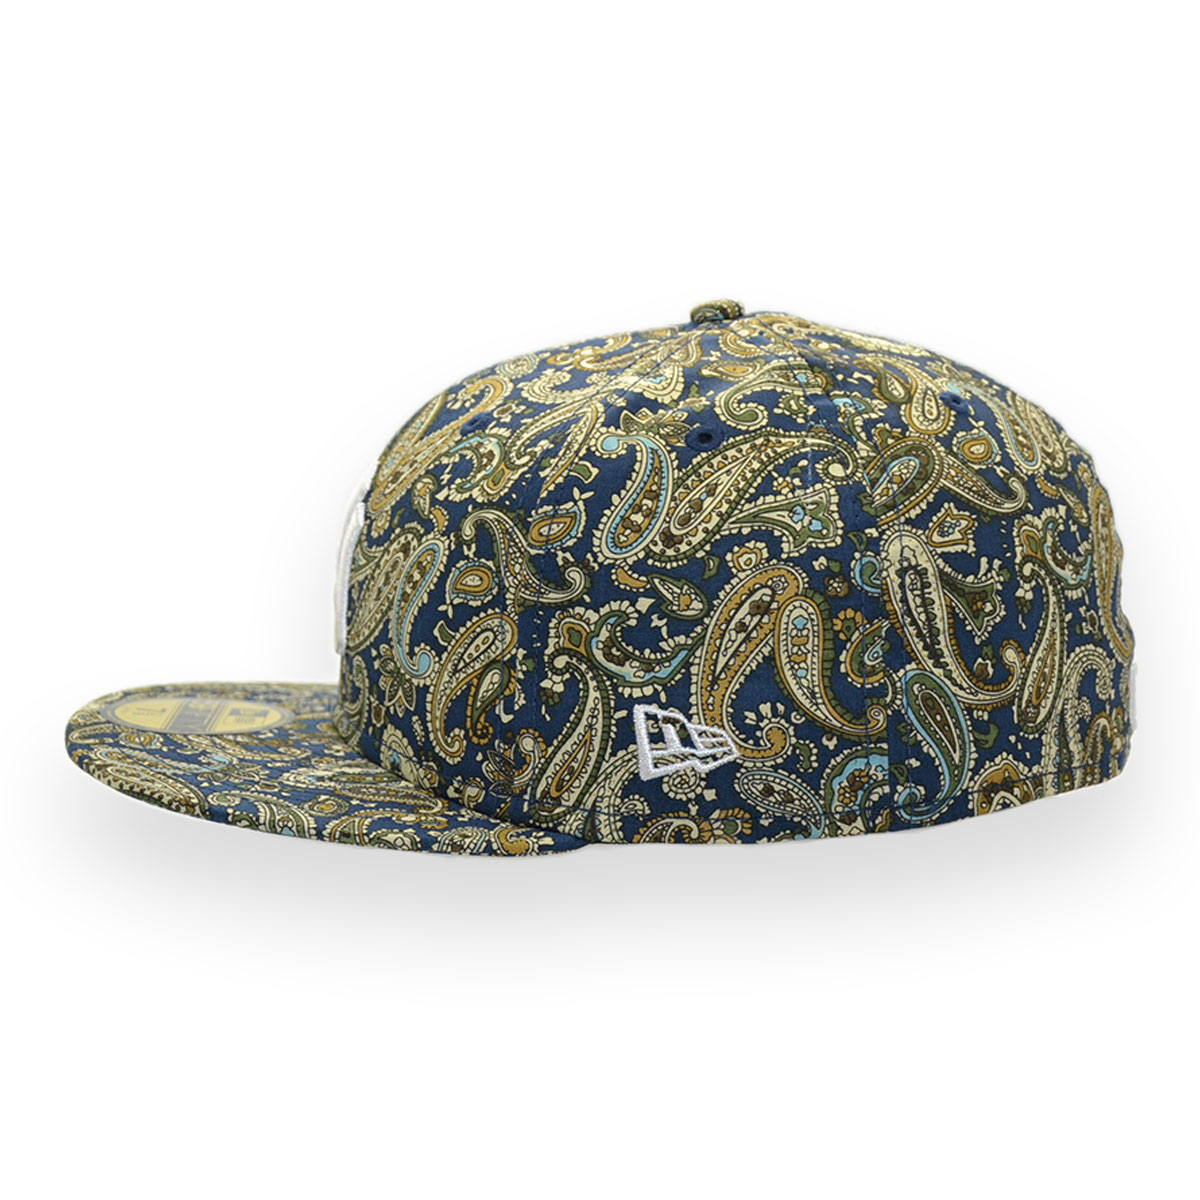 NEW ERA KOREA NEW YORK YANKEES NY MLB 59FIFTY PAISLEY CAP - MyCraze 978f1a5c02a5